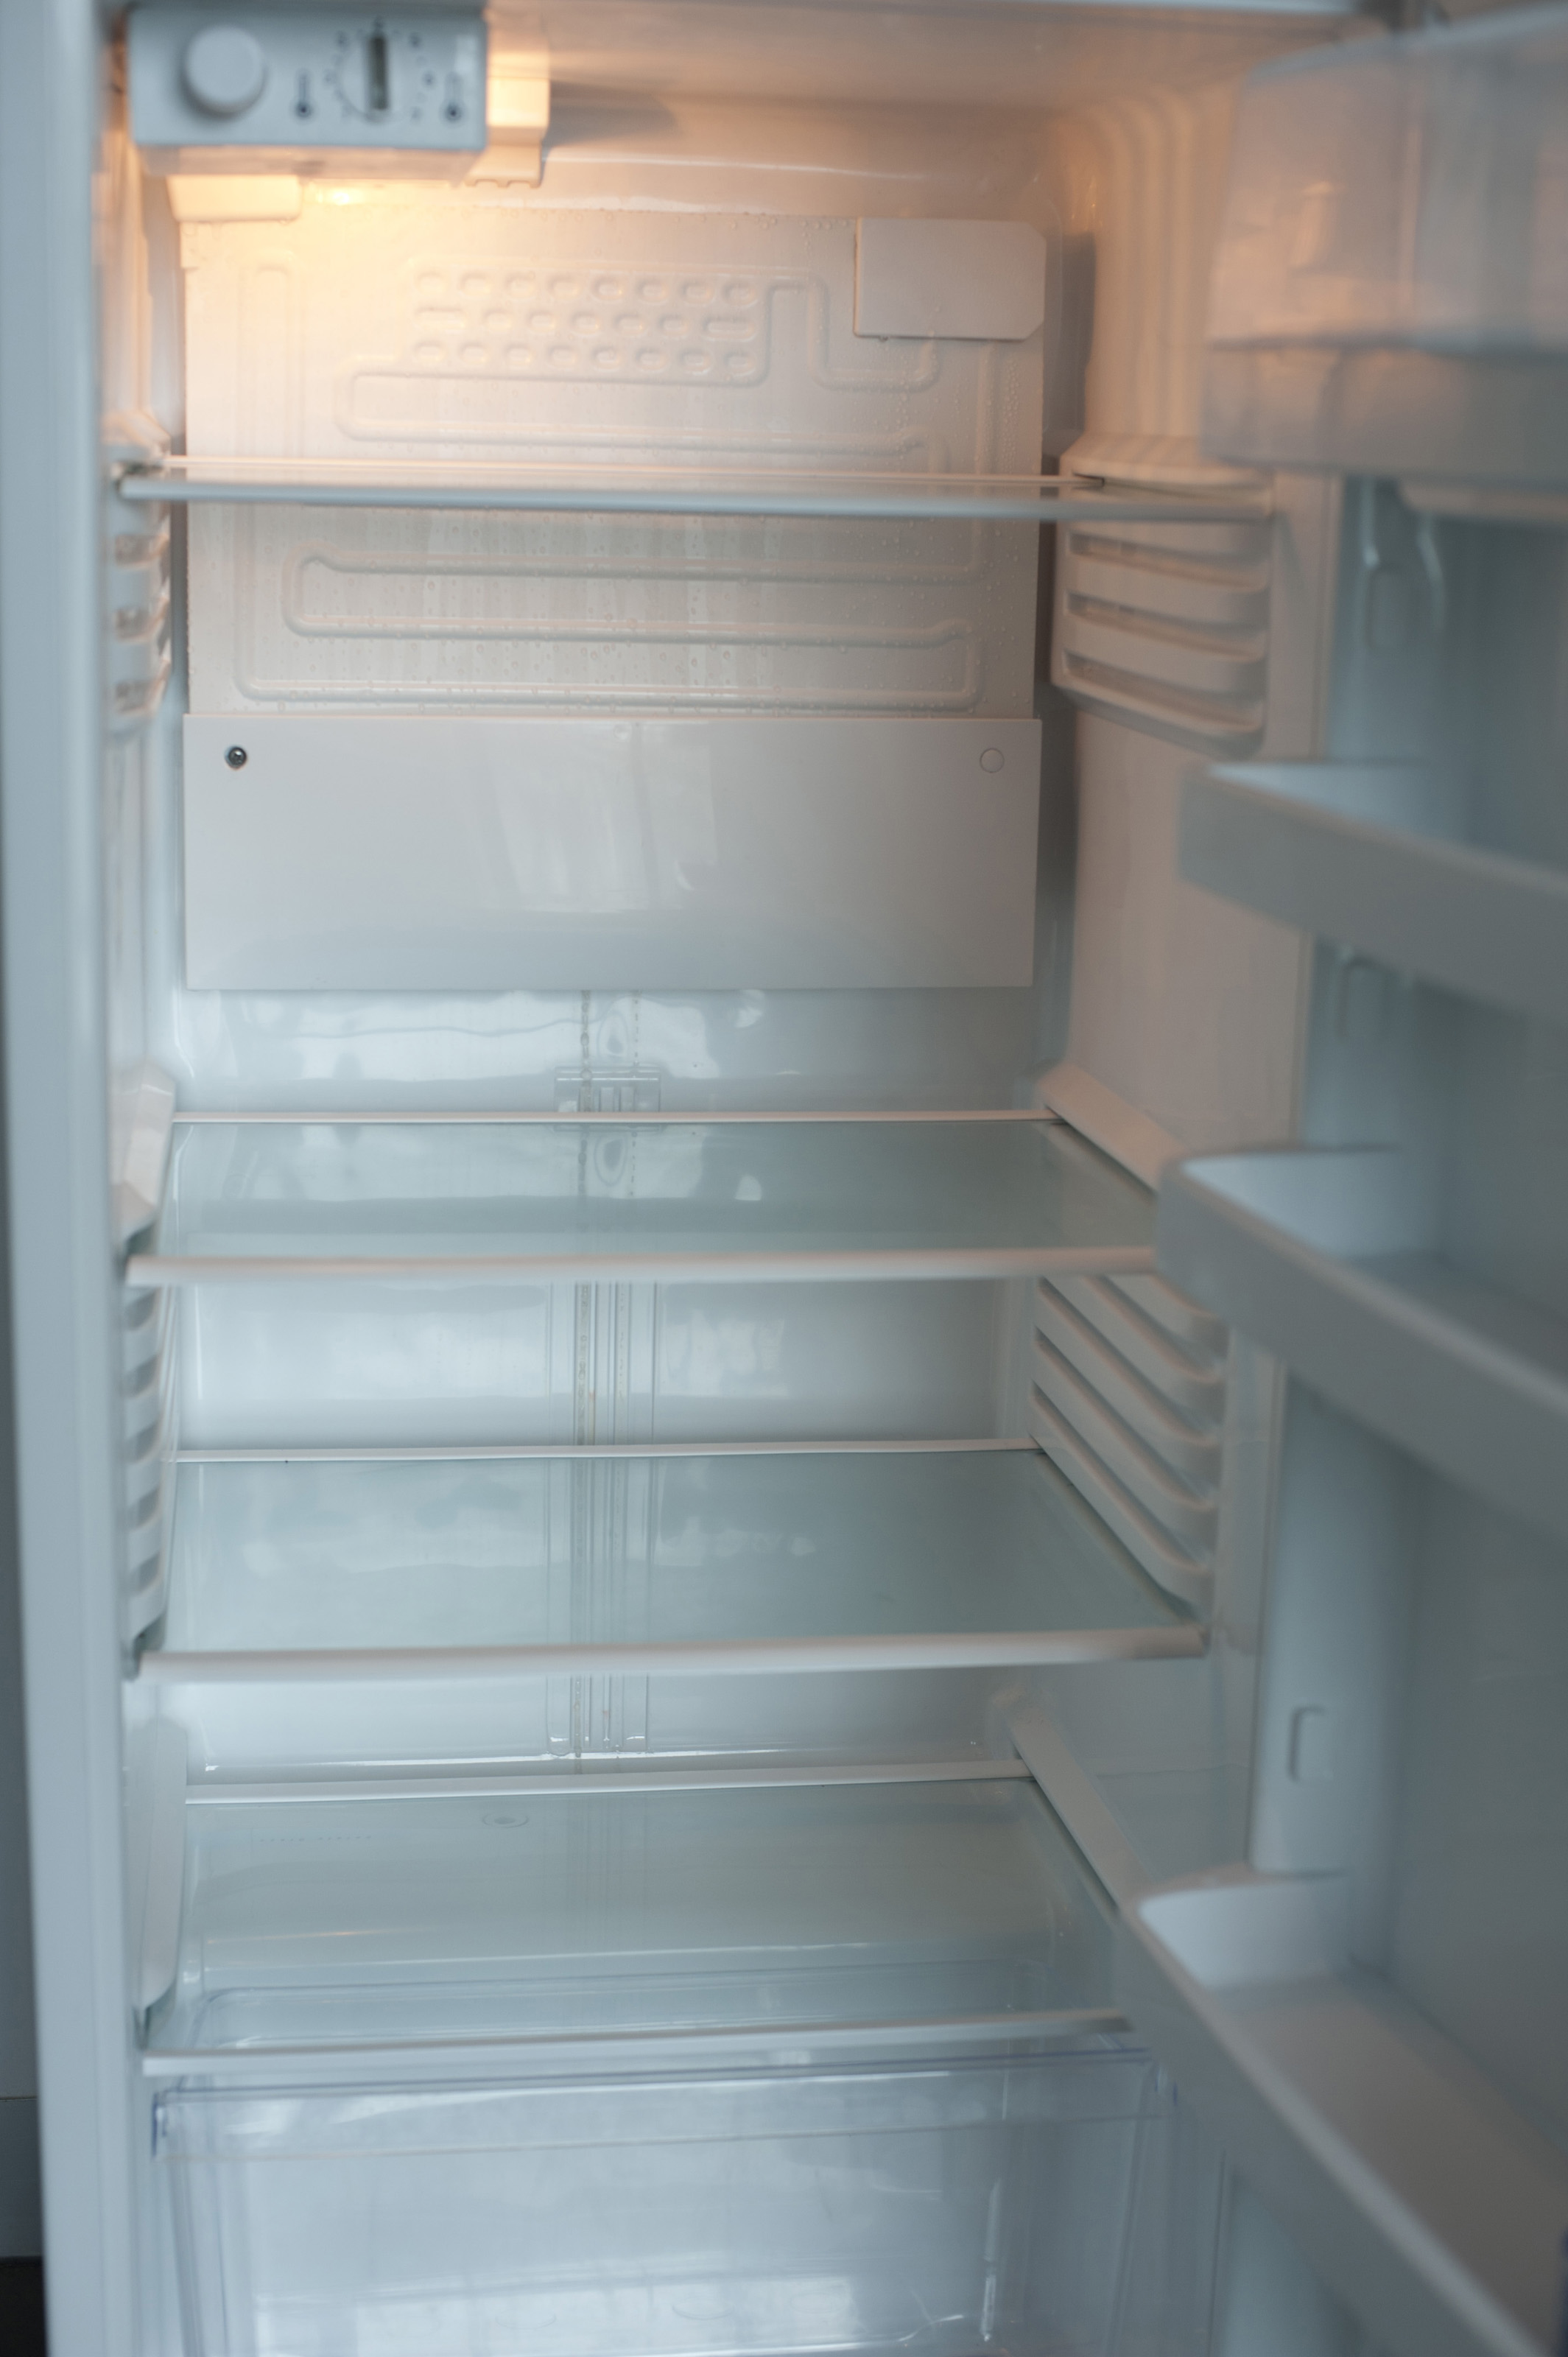 Free Stock Photo 10651 Open Empty Refrigerator